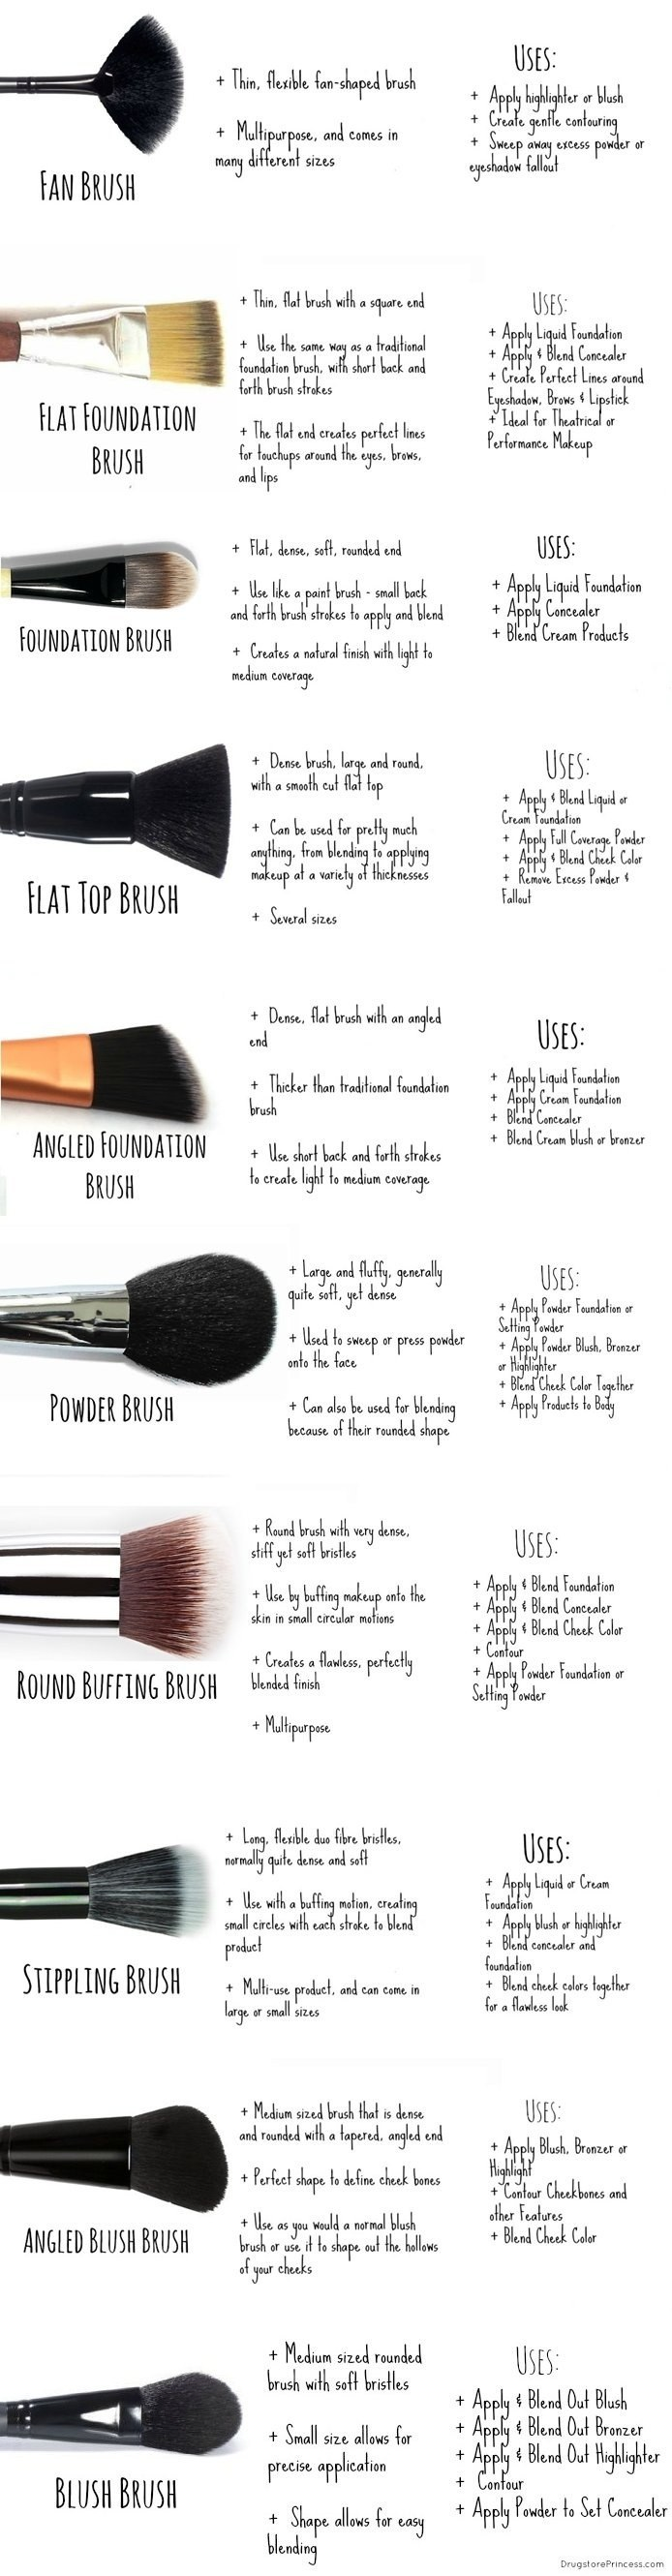 1 face brushes come with pretty specific purposes  [ 694 x 2661 Pixel ]